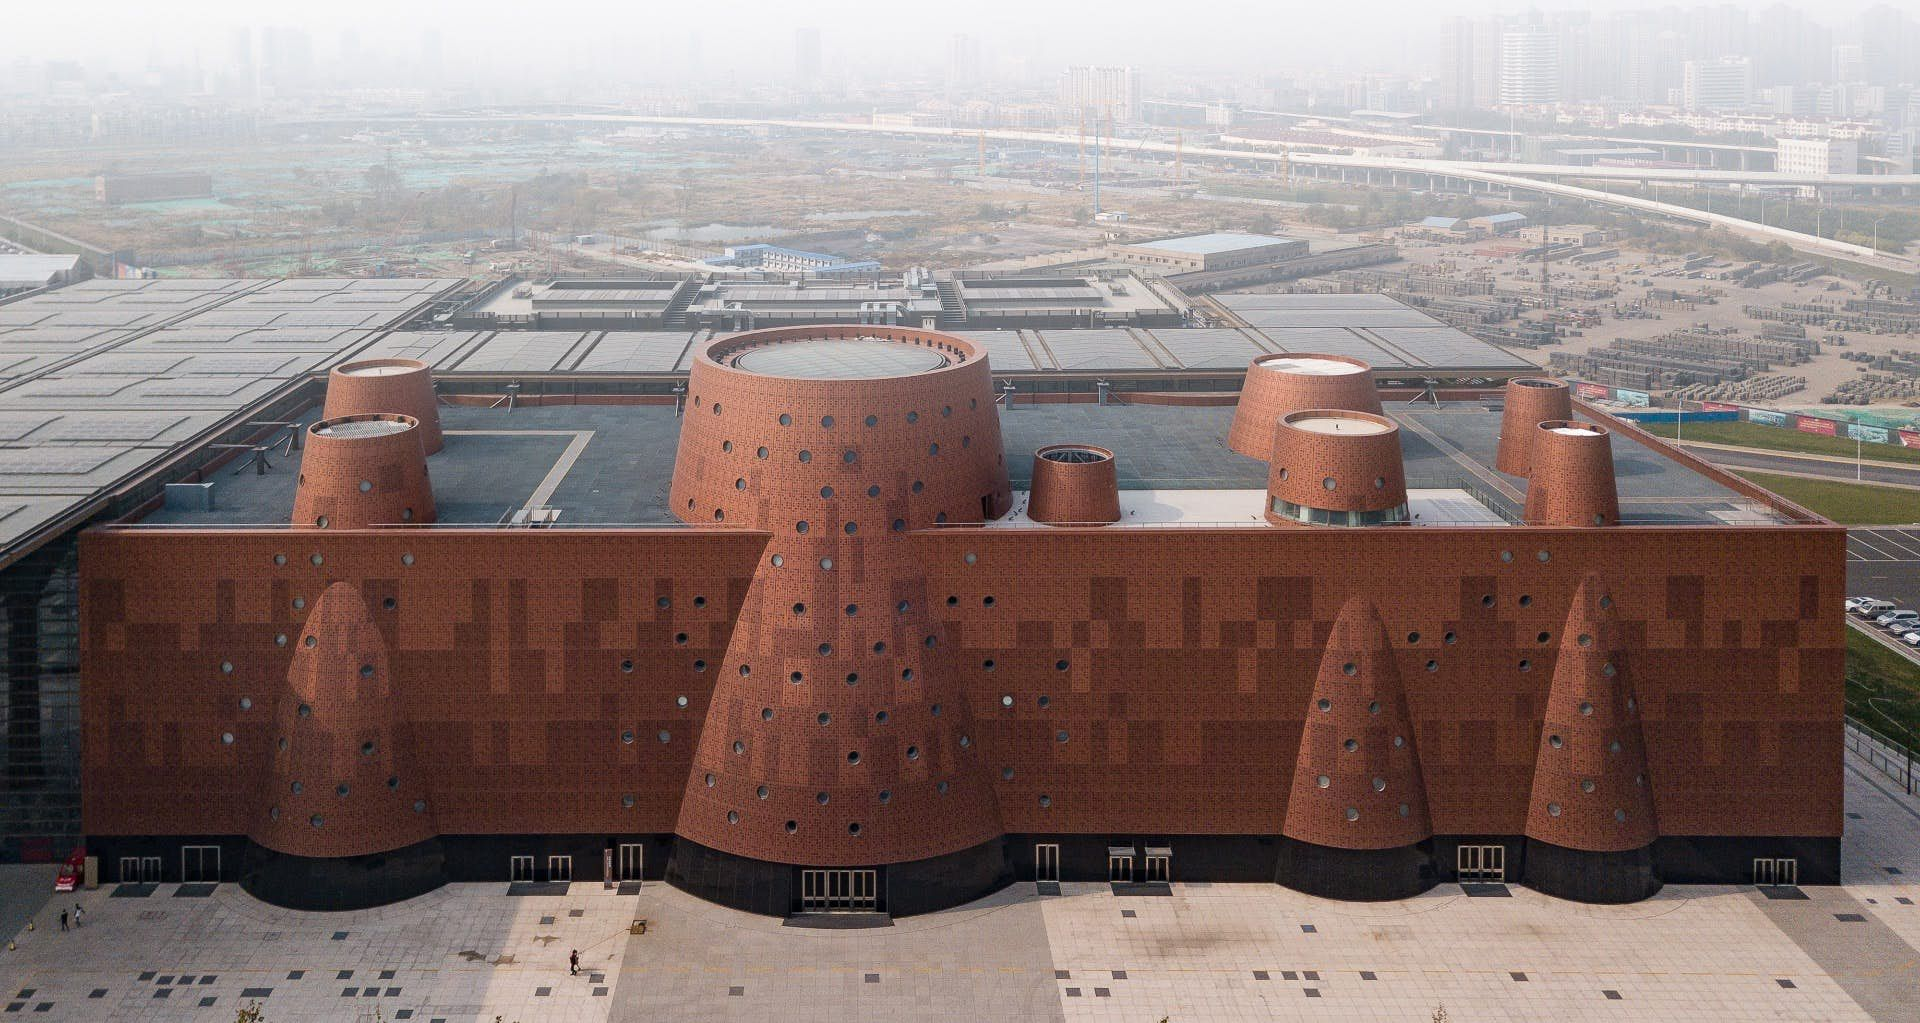 The Exploratorium Measures 33 000 Sq M 355 200 Sq Ft And Is Finished In An Eye Catching Reddish China Architecture Bernard Tschumi Architecture